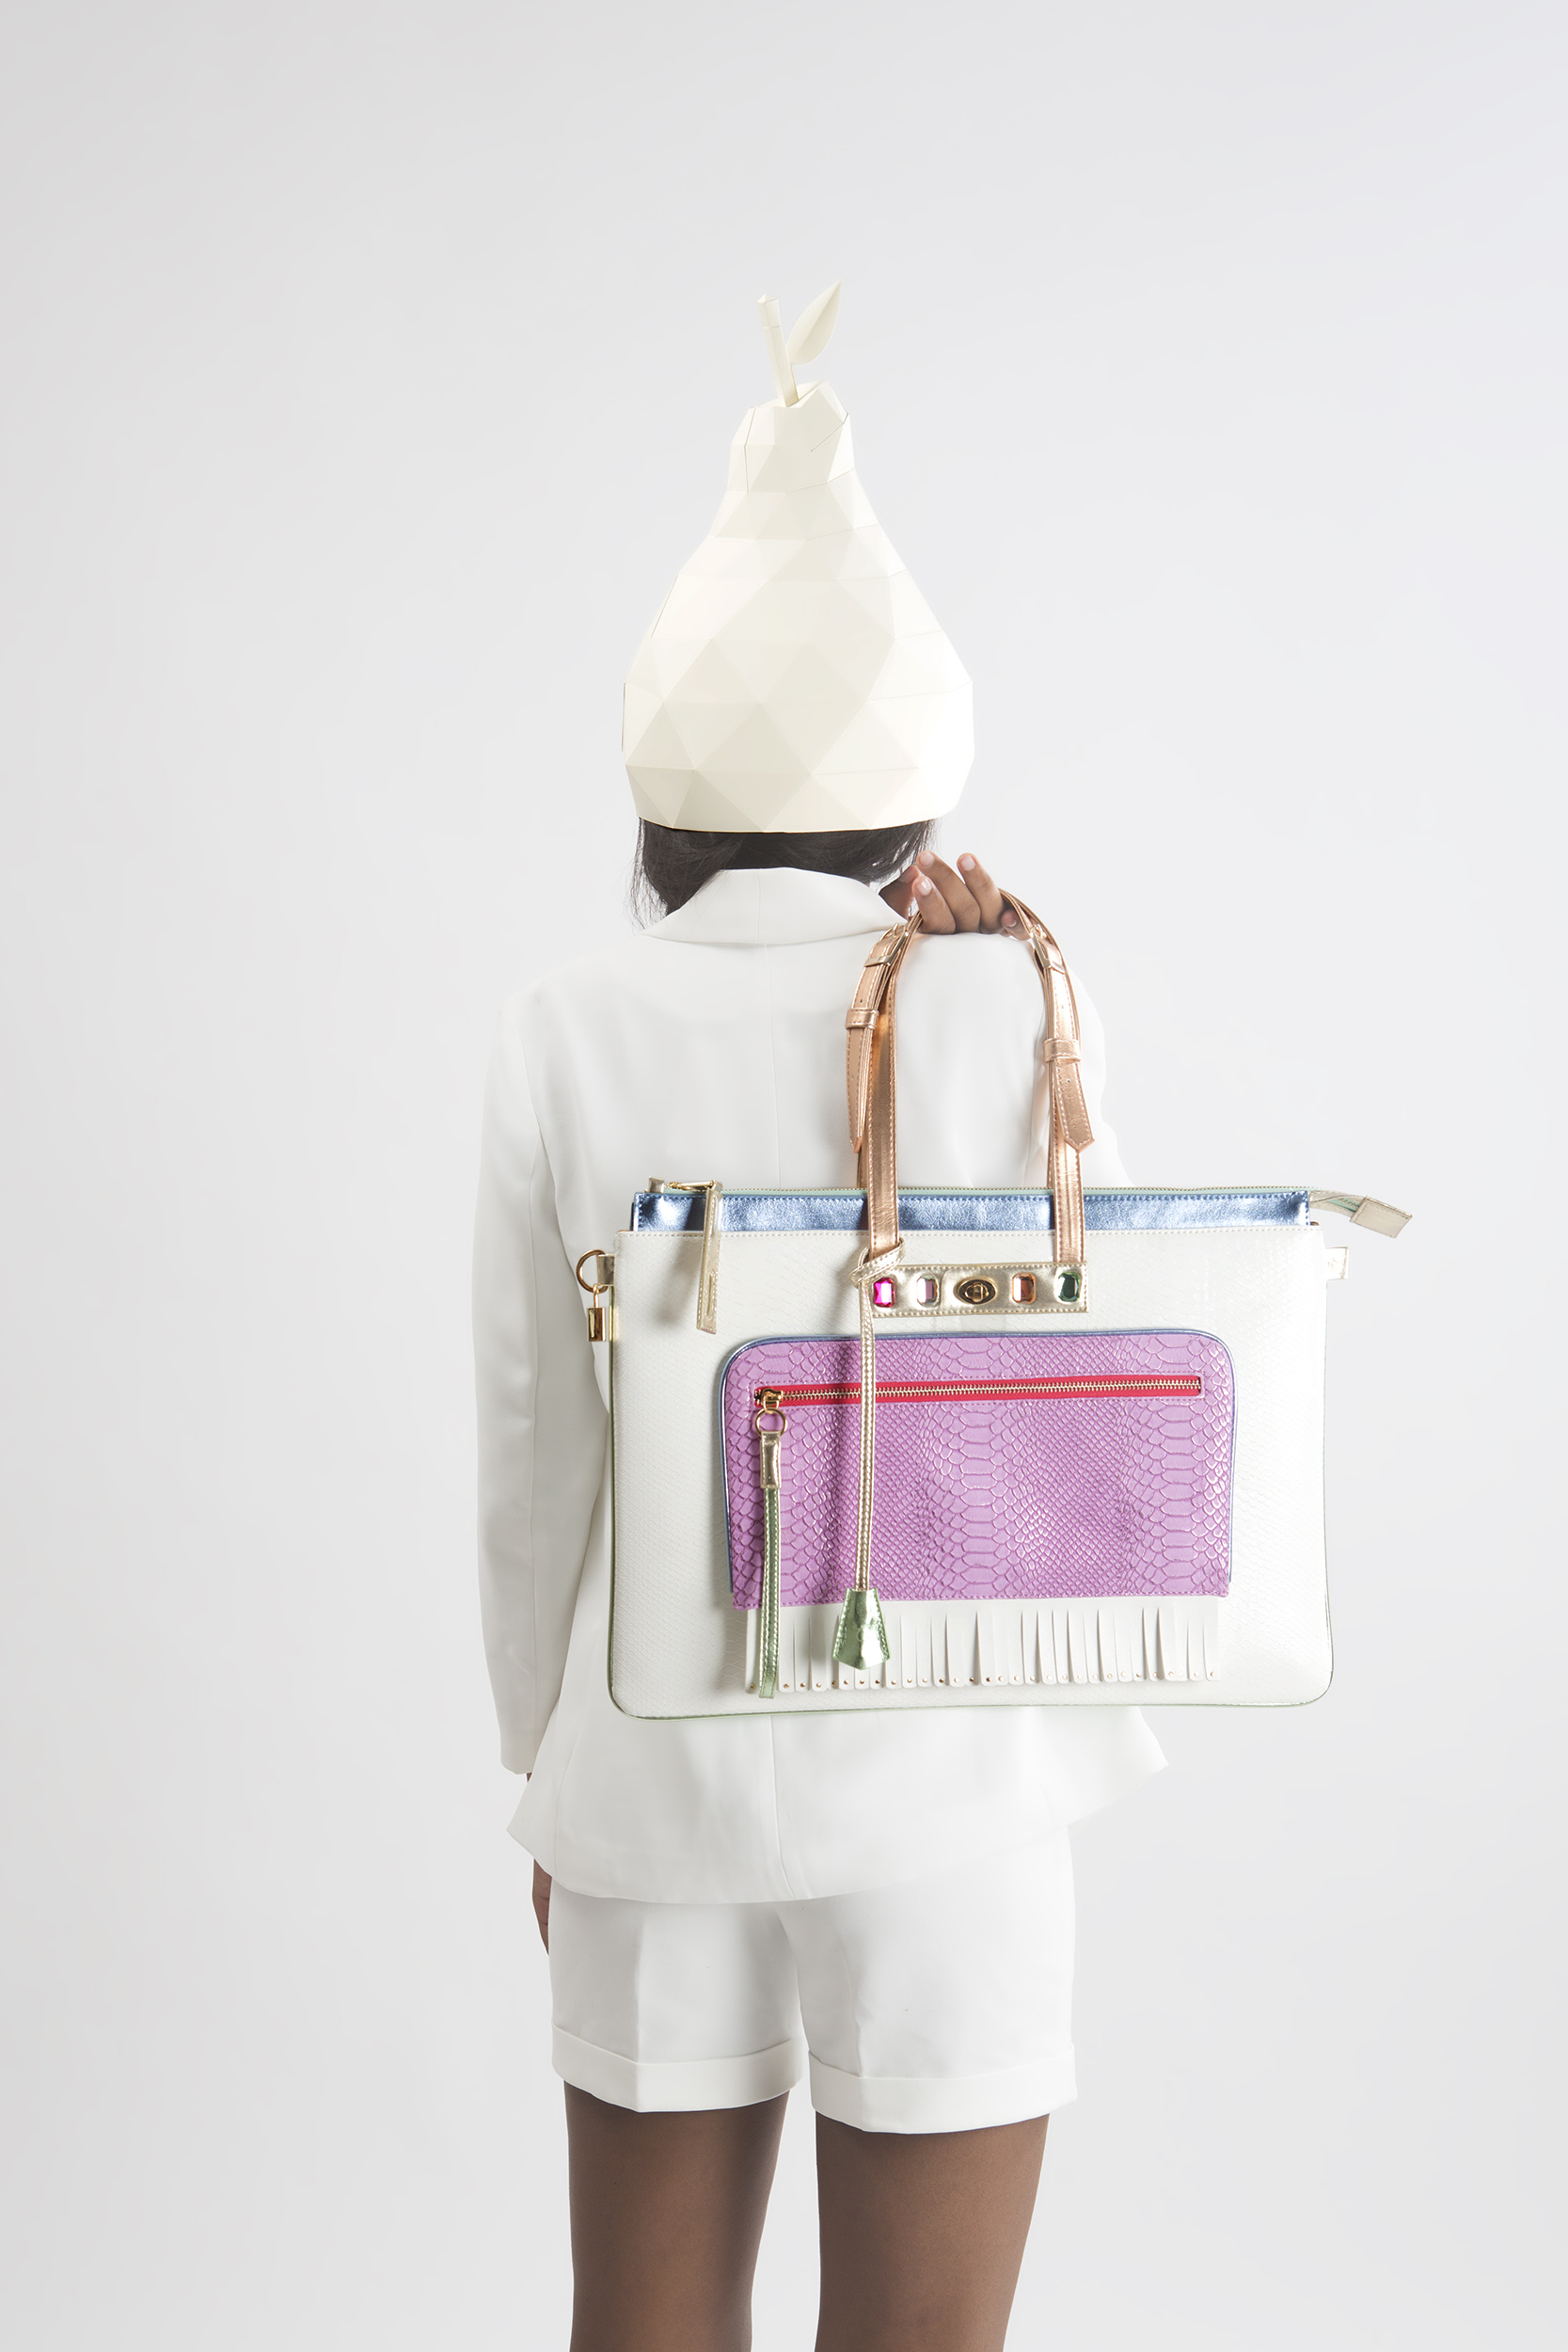 FruitenVeg-MULAYA bag-vegan-eco-leather-croc-embossed-large-laptop-tote-bag-white-purple-nude-nyc-handbag-designer